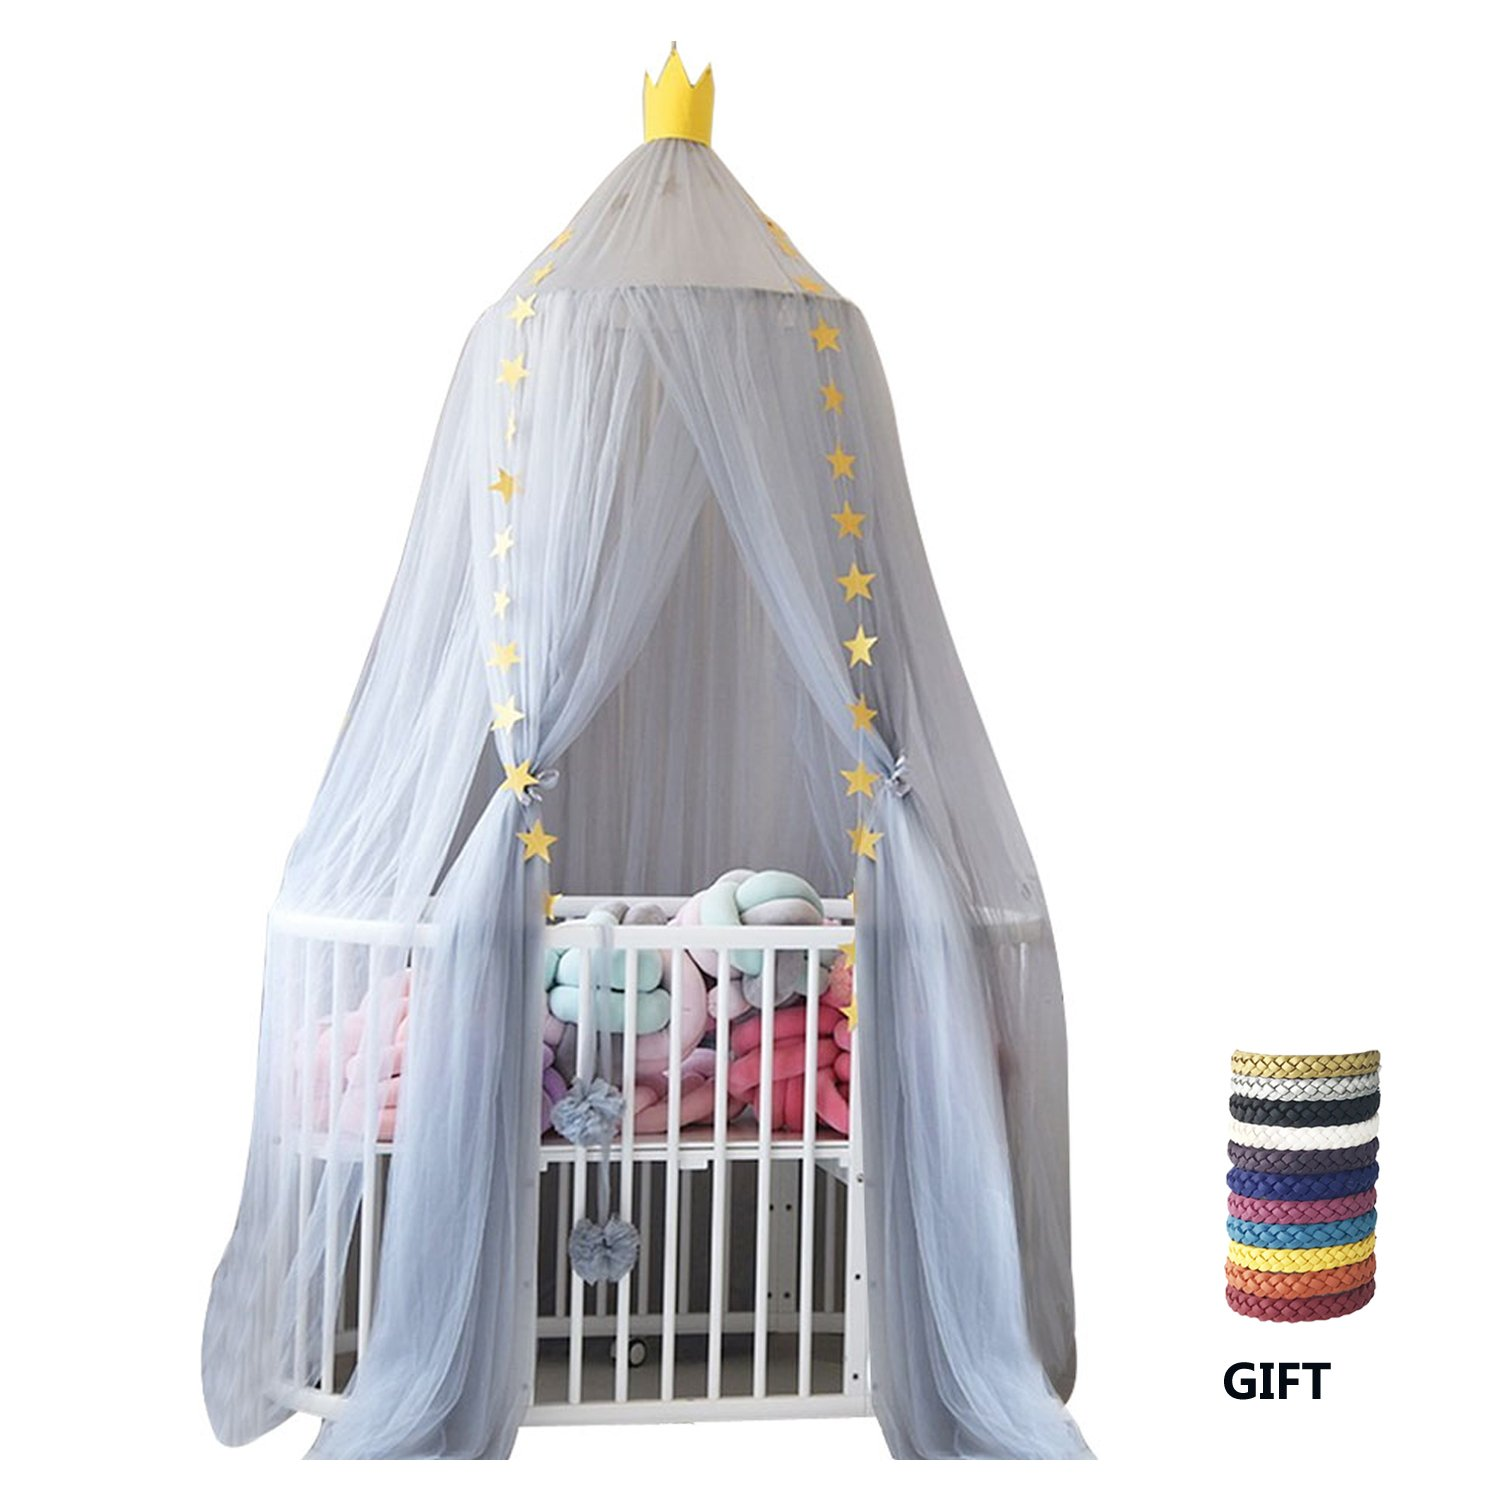 Xinyi Children Bed Mosquito Net for Kids, Crib Bed Canopy Round Dome Hanging Netting Tent Bedding for Boys and Girls Playing Reading Indoor Lace Decoration Grey